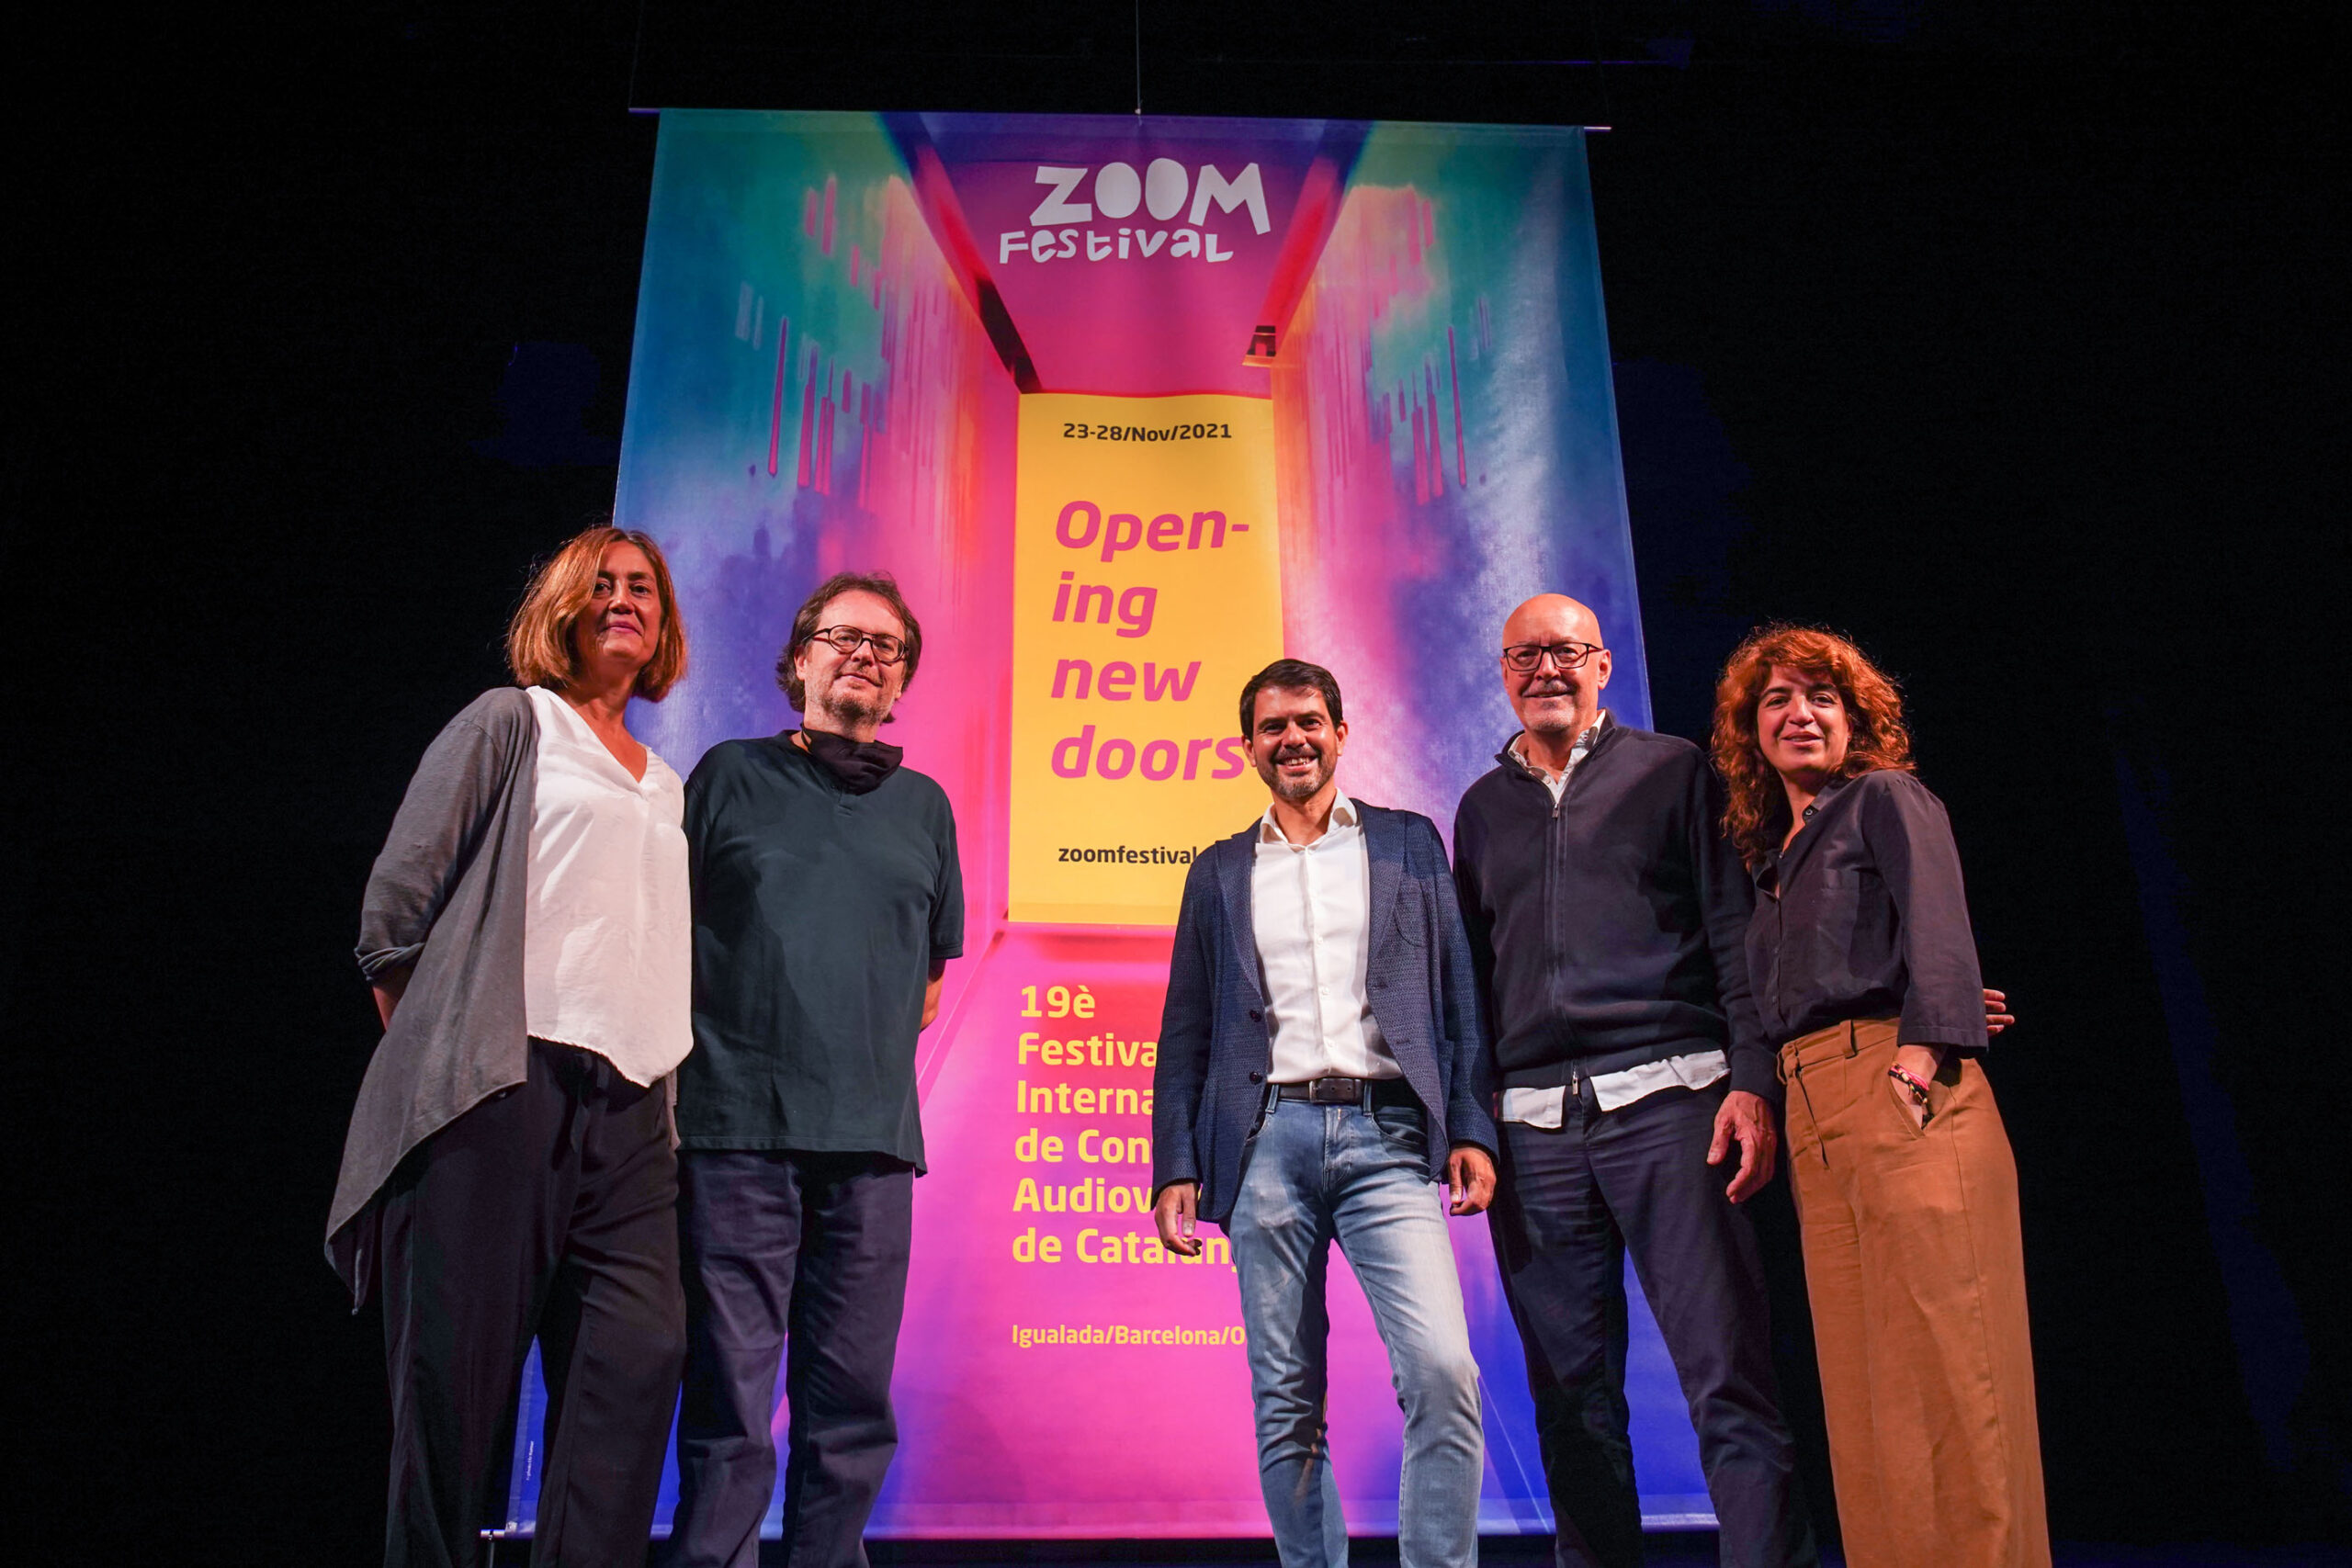 THE INTERNATIONAL FESTIVAL OF AUDIOVISUAL CONTENT OF CATALONIA WILL BE HELD FROM THE 23RD TO THE 28TH OF NOVEMBER